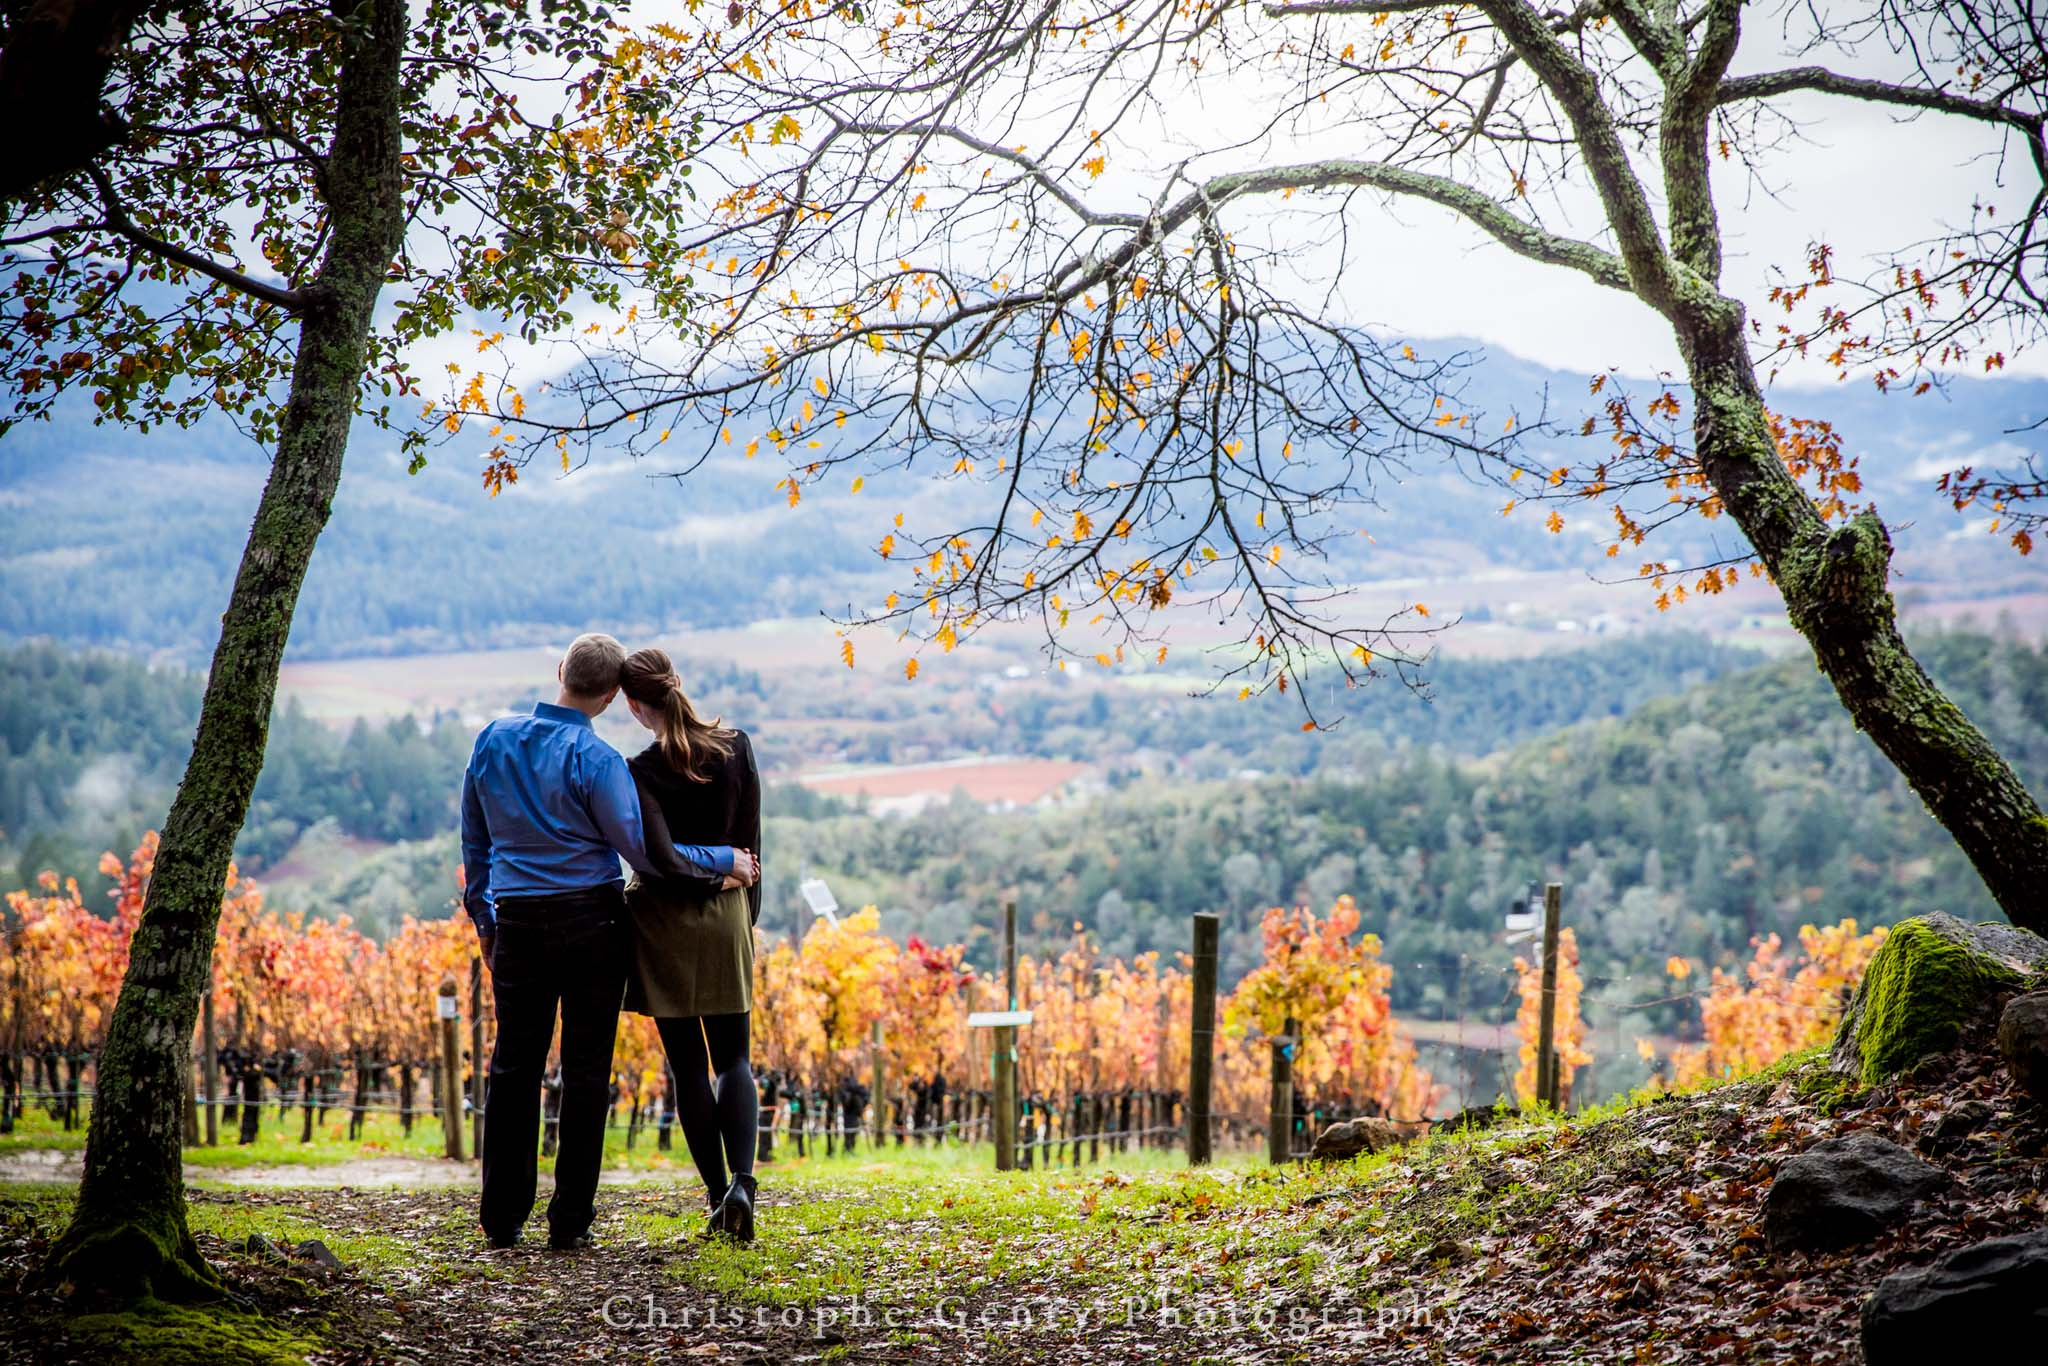 Napa-Marriage-Proposal-Photography-129